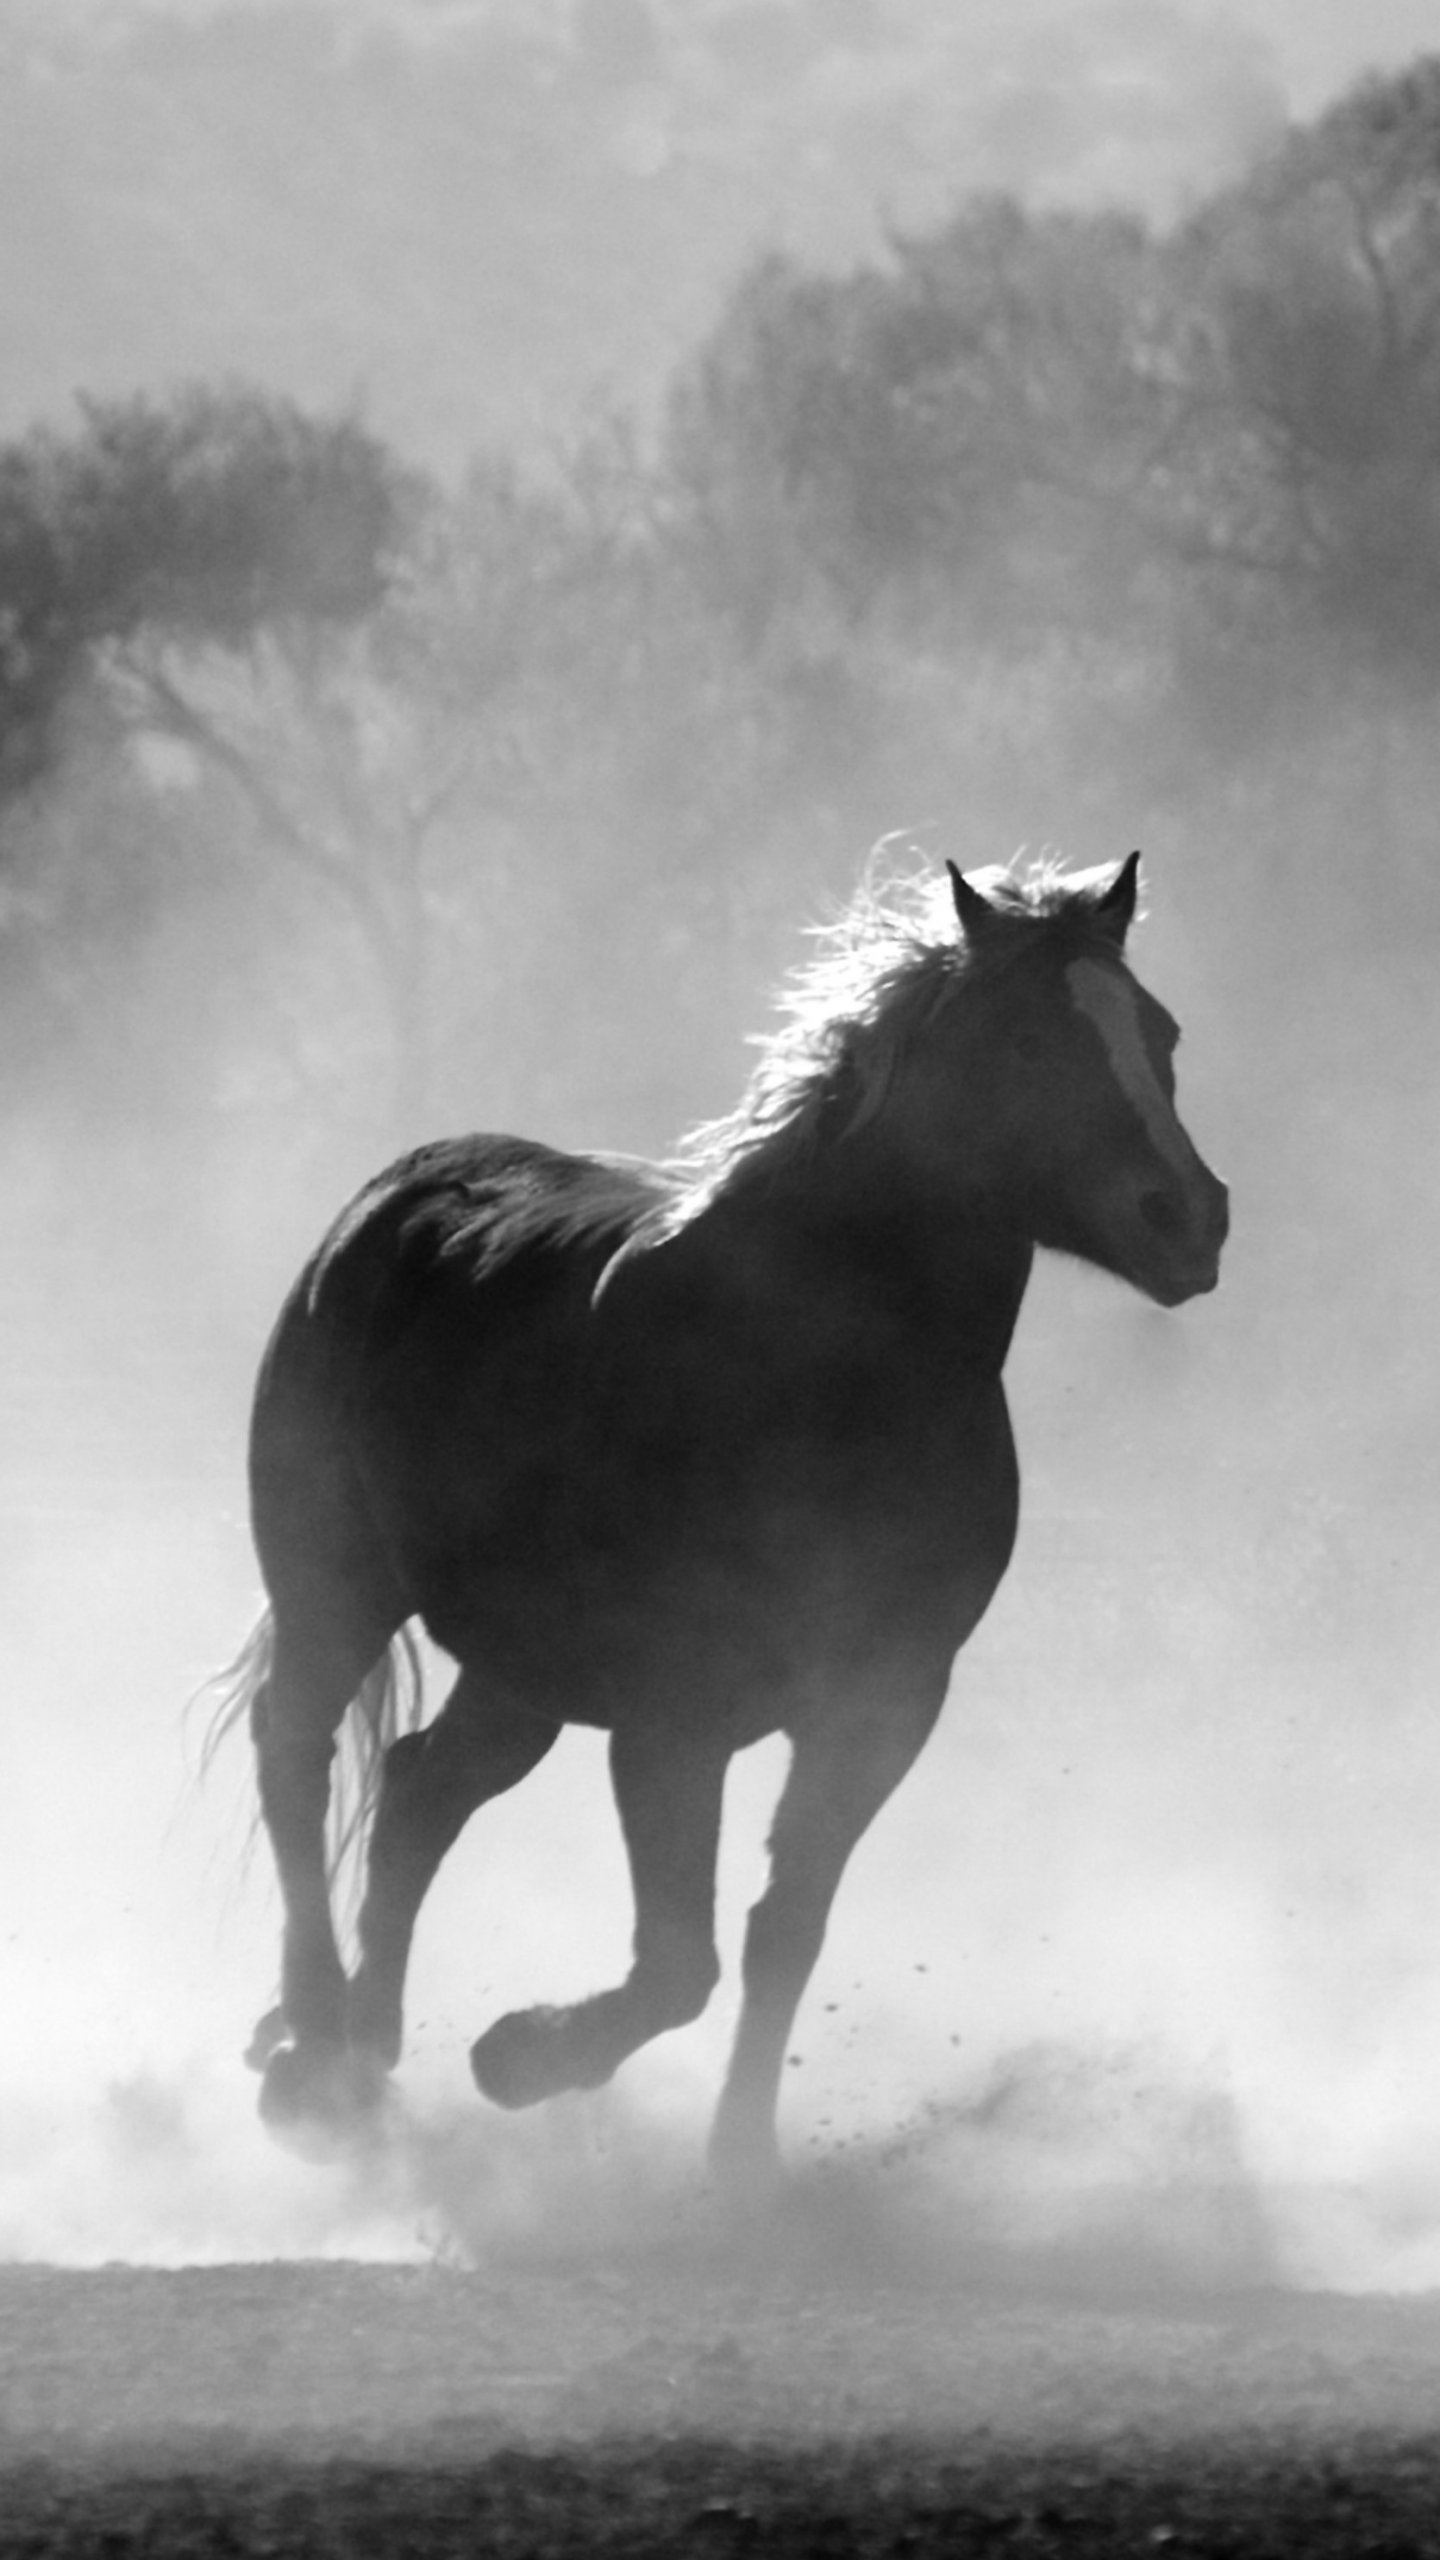 Horses In The Mist Wallpaper Iphone Android Desktop Backgrounds